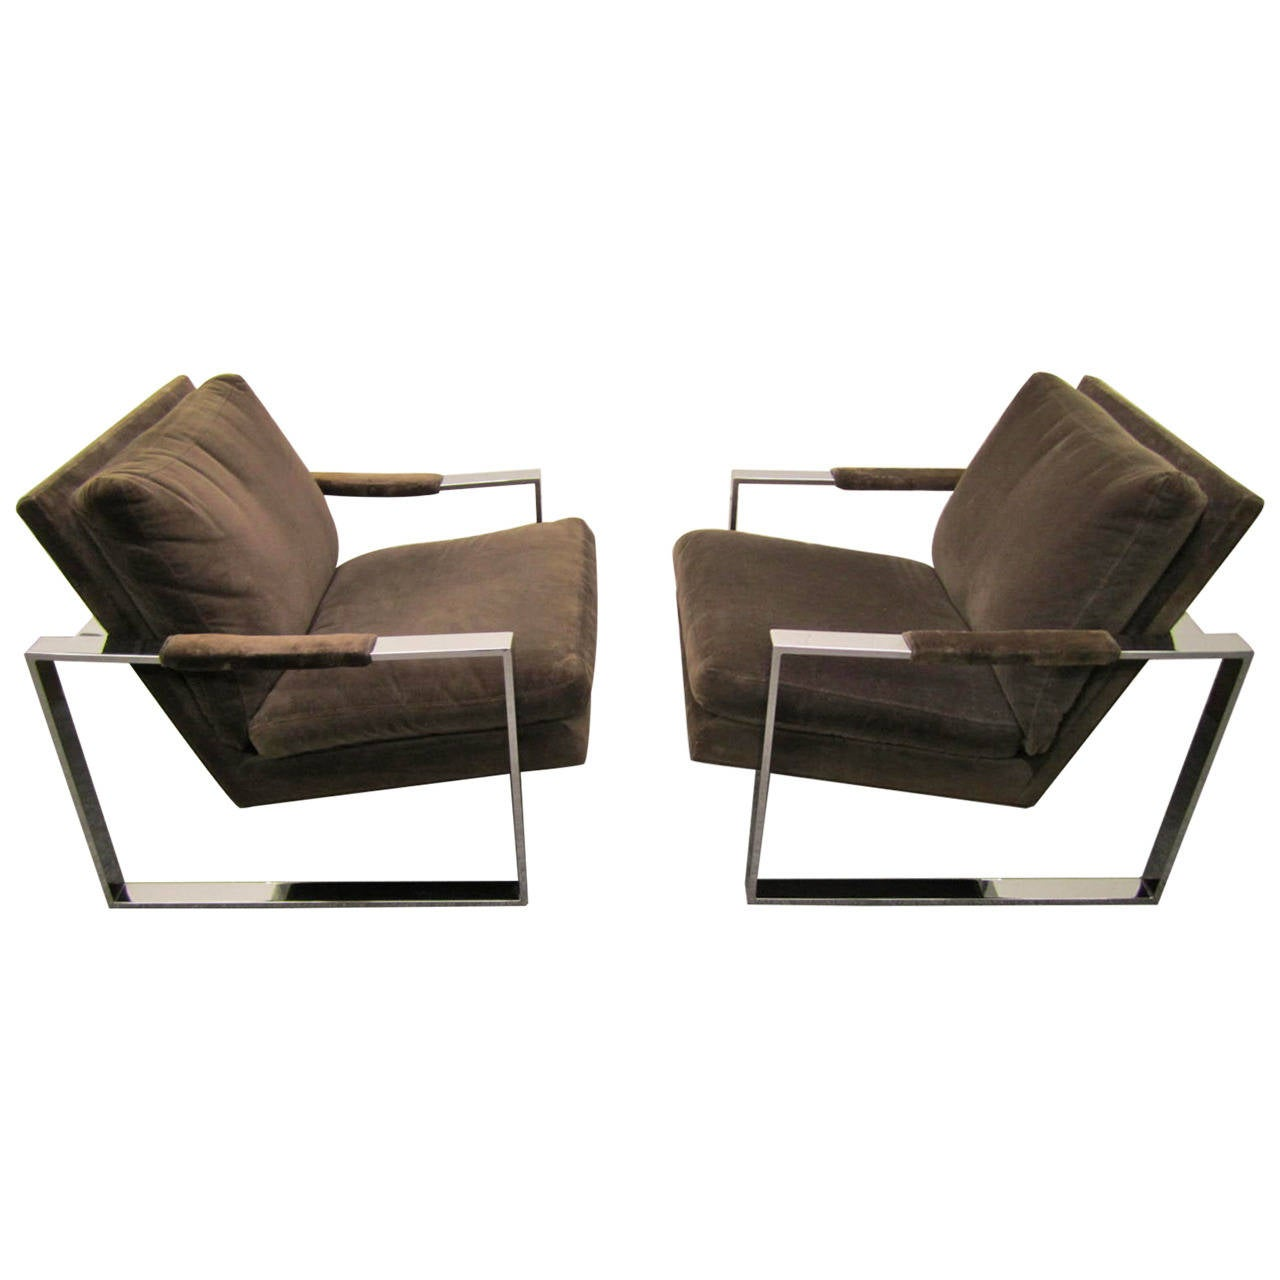 Superb Fabulous Pair Of Milo Baughman Chrome Cube Lounge Chairs, Mid Century  Modern 1